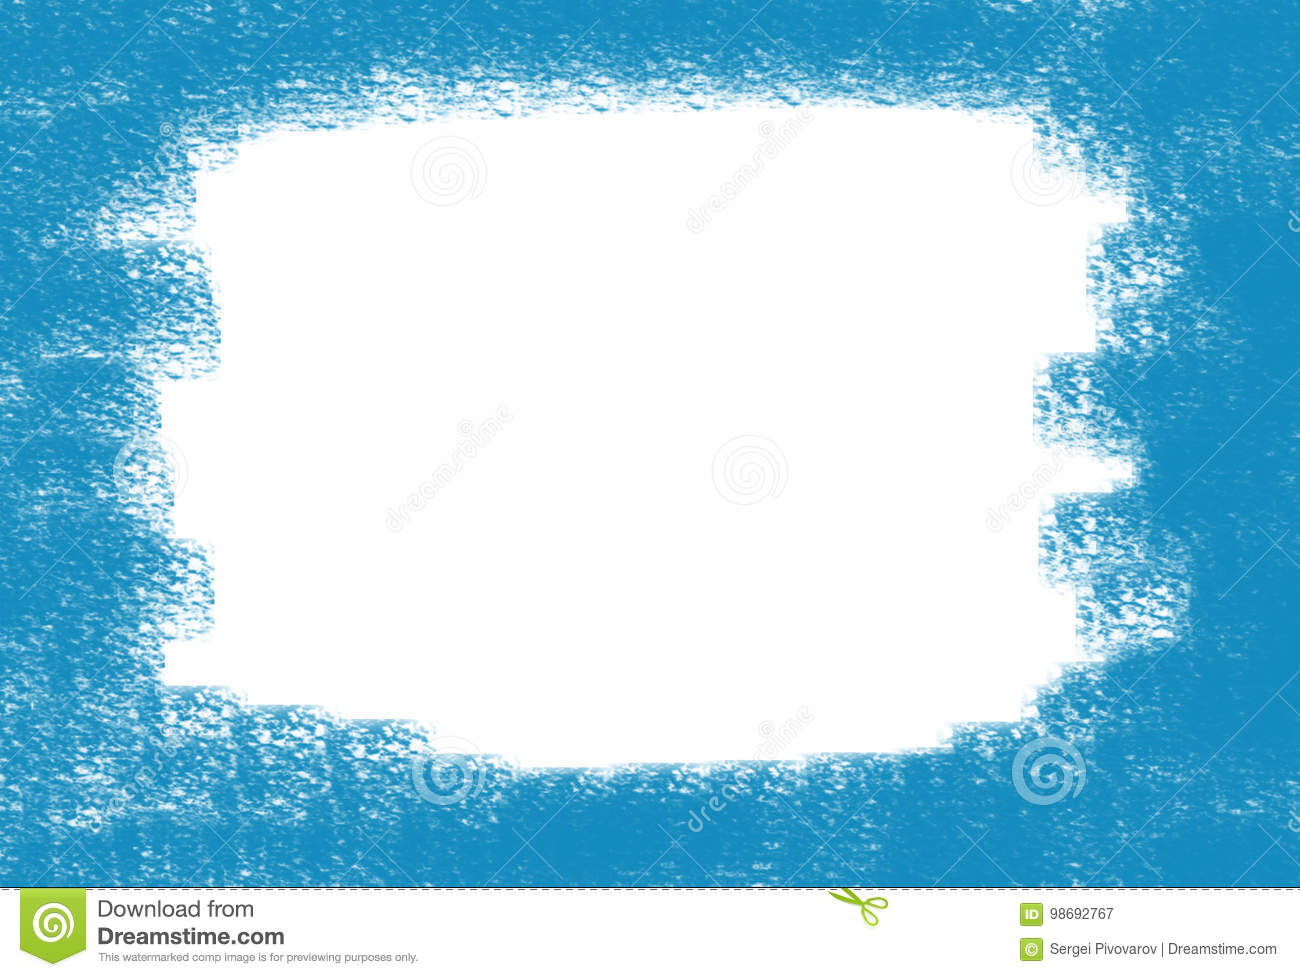 Abstract background frame whitewashed spot on canvas painted blue paint